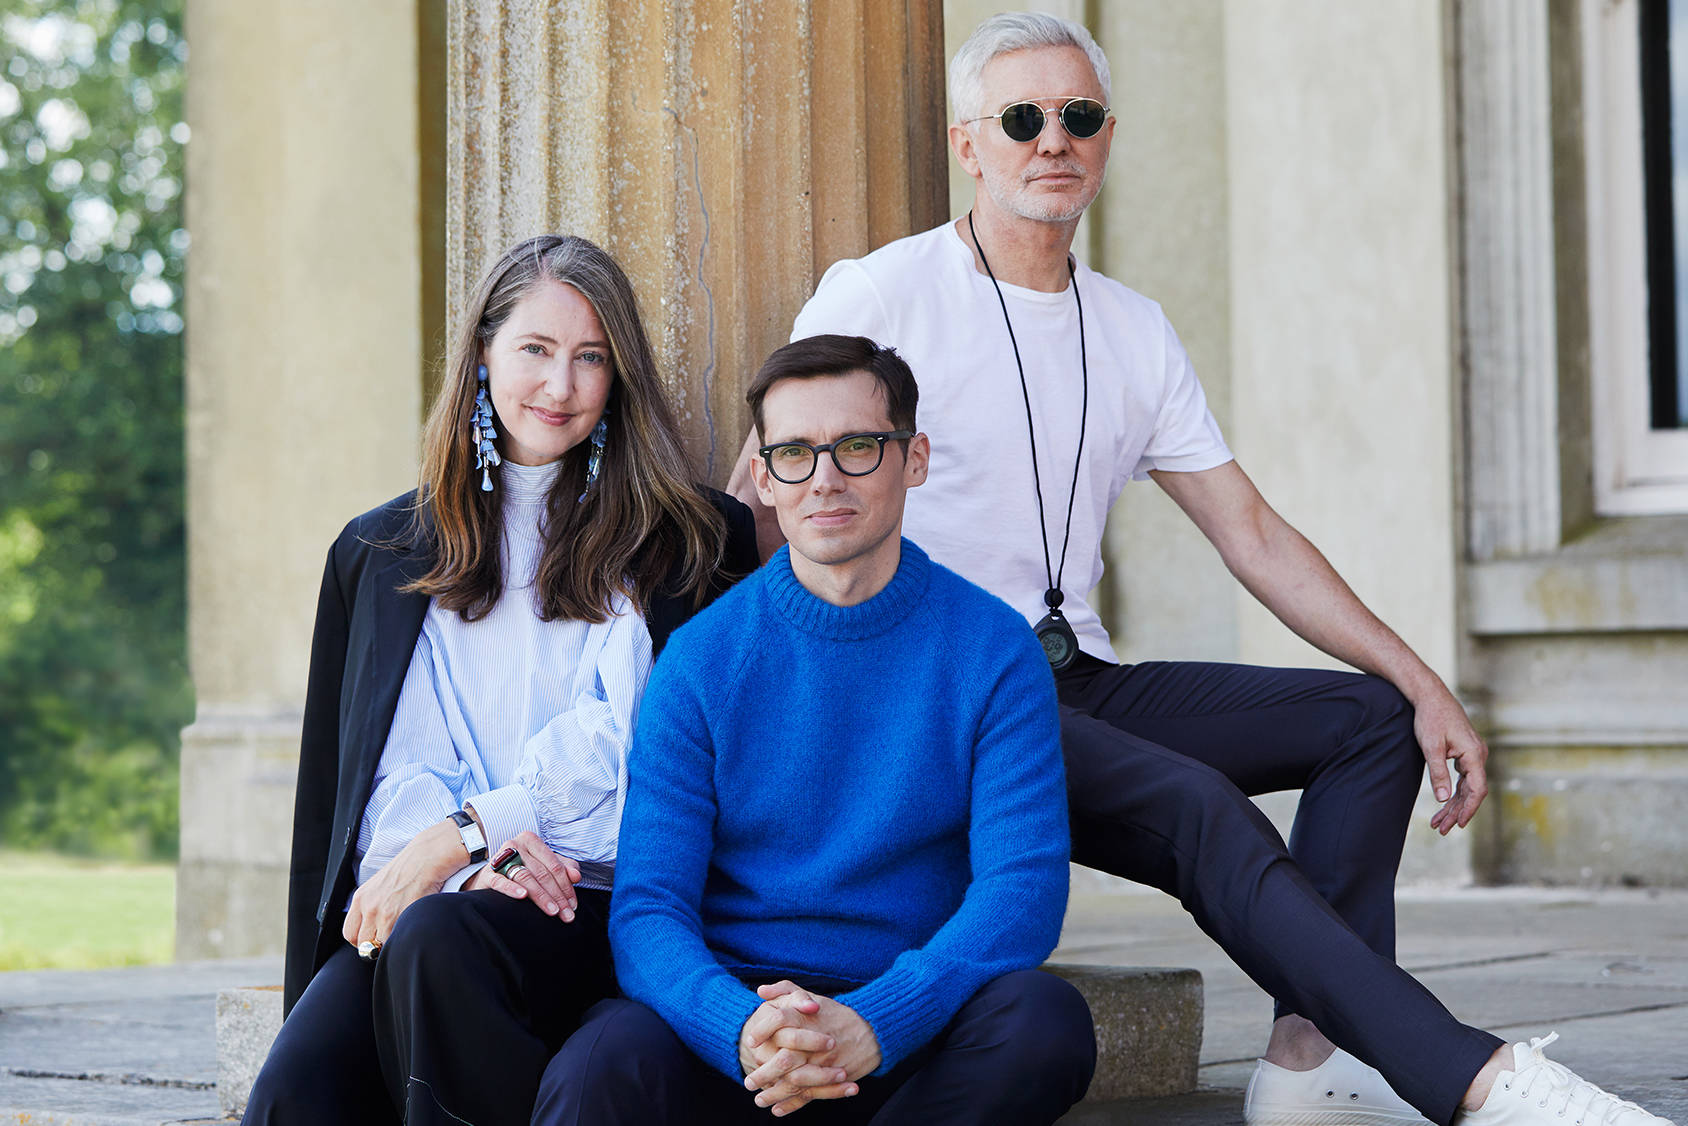 H&M creative advisor Ann-Sofie Johansson, designer Erdem Moralıoğlu, and filmmaker Baz Luhrmann together on set in England.